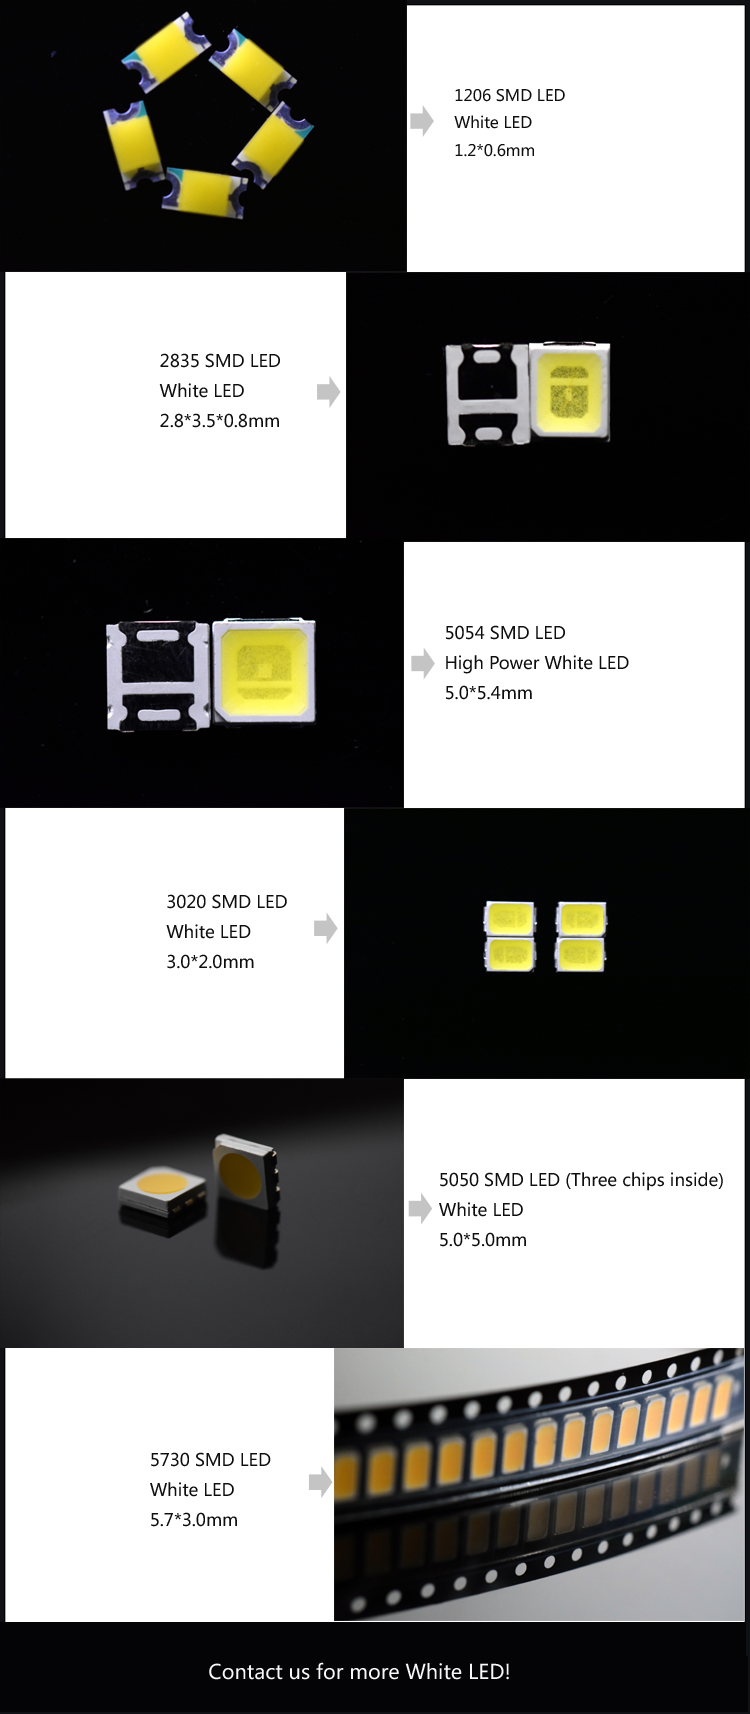 white LED catalog